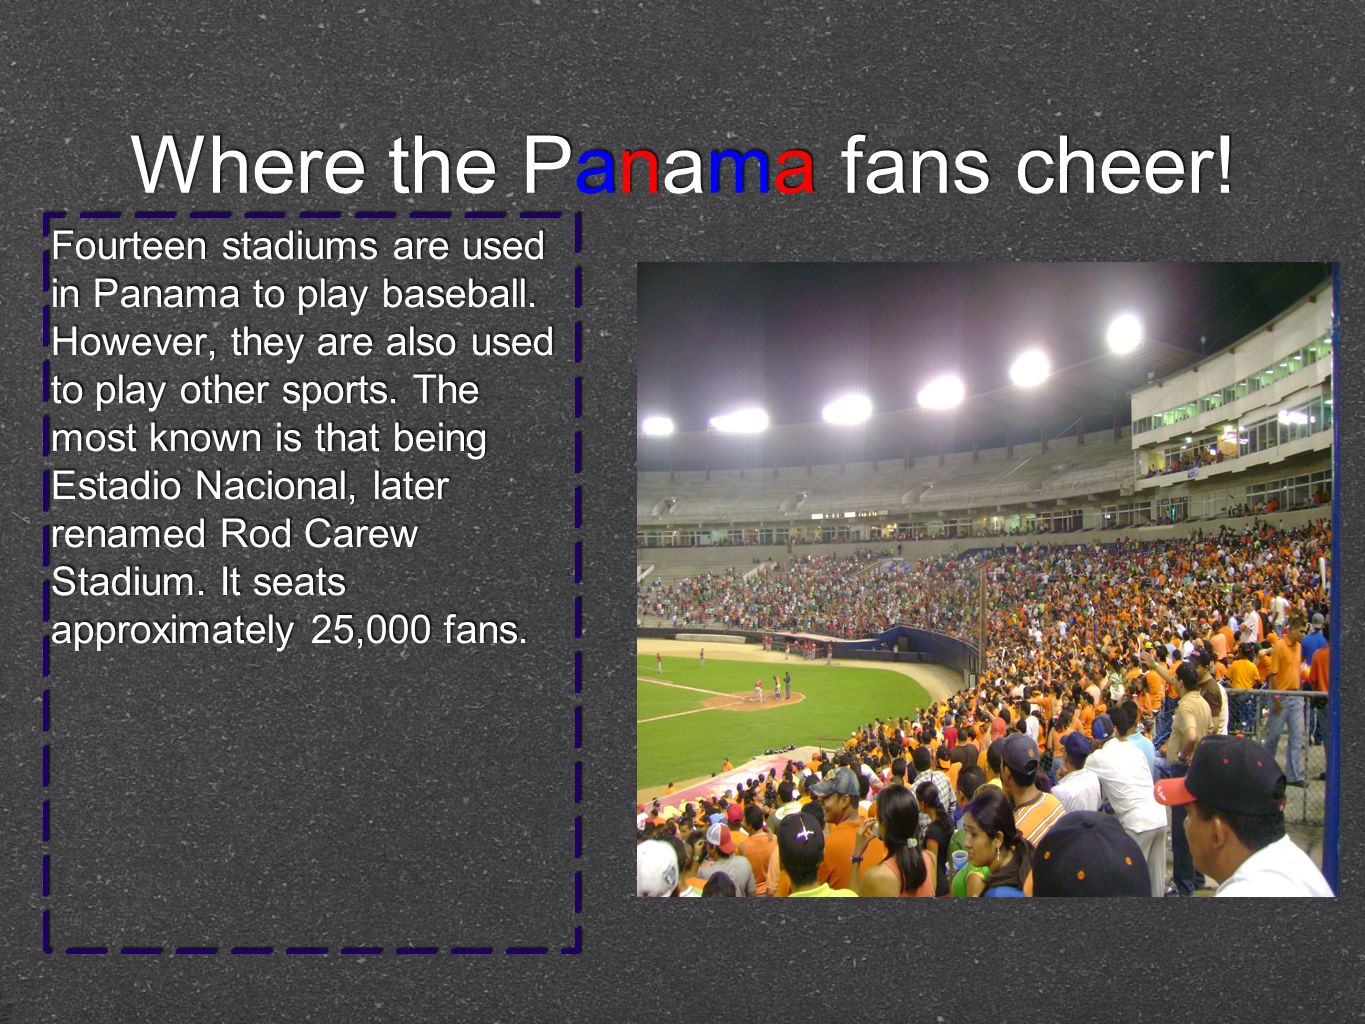 Where the Panama fans cheer. Fourteen stadiums are used in Panama to play baseball.